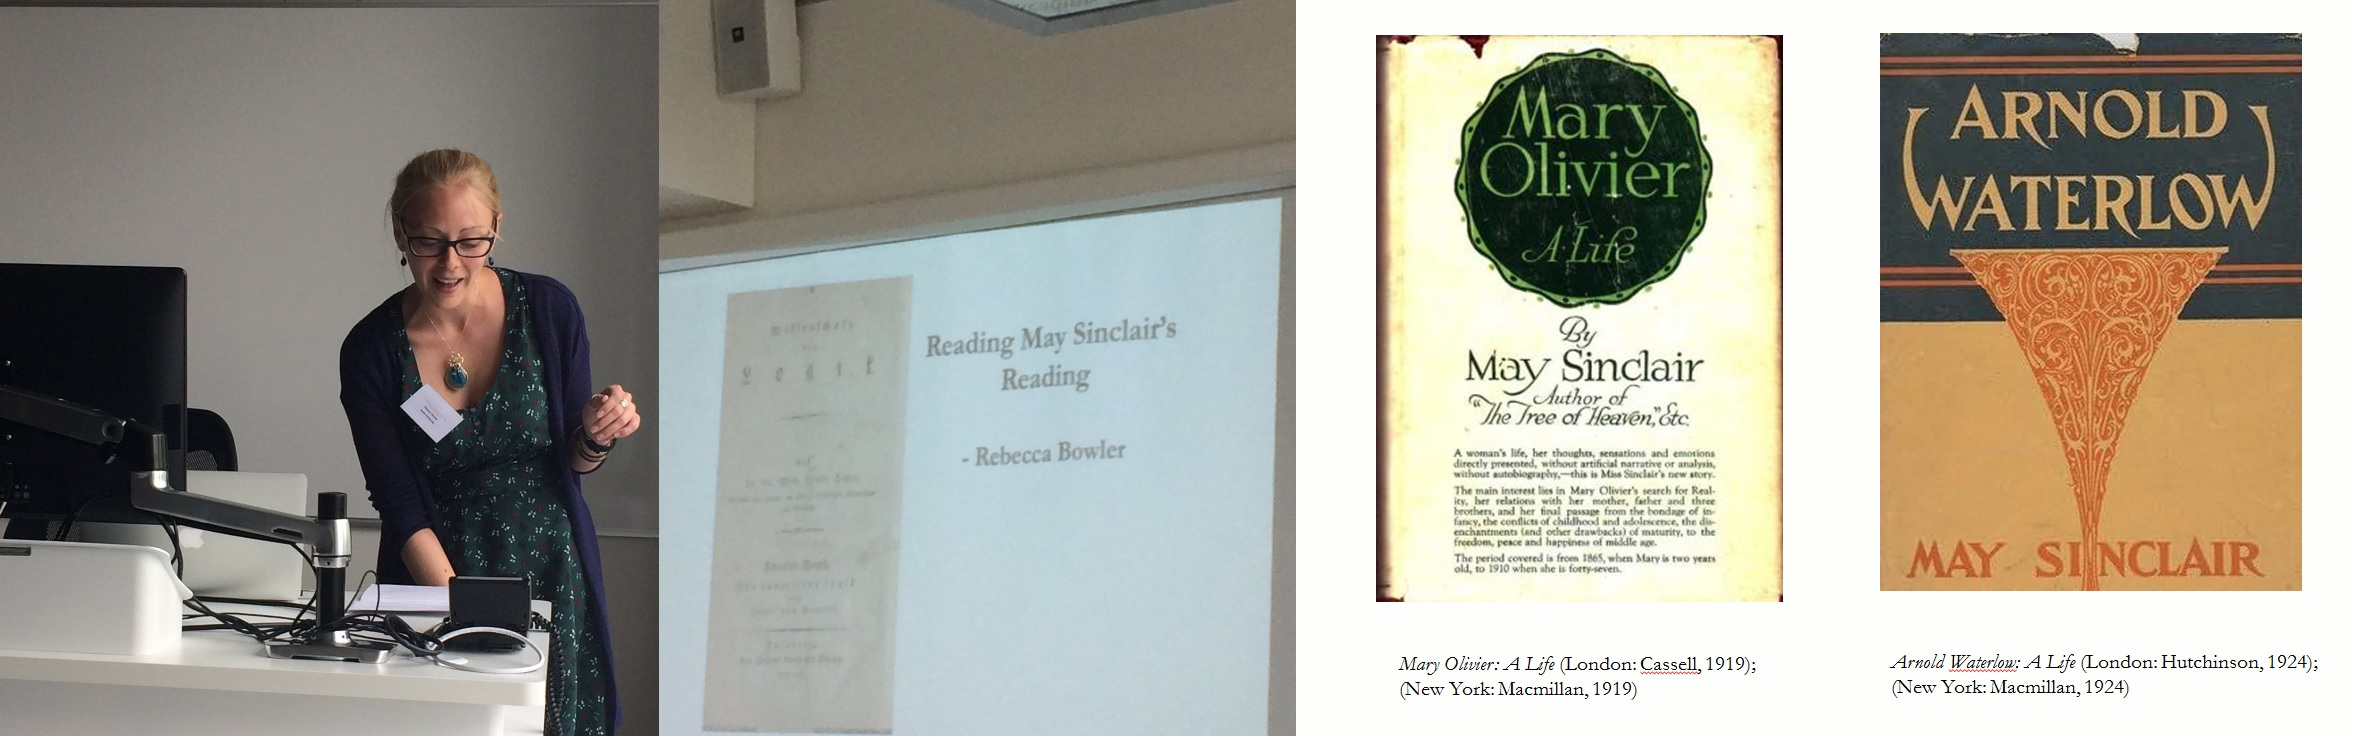 Reading Sinclair's Reading banner